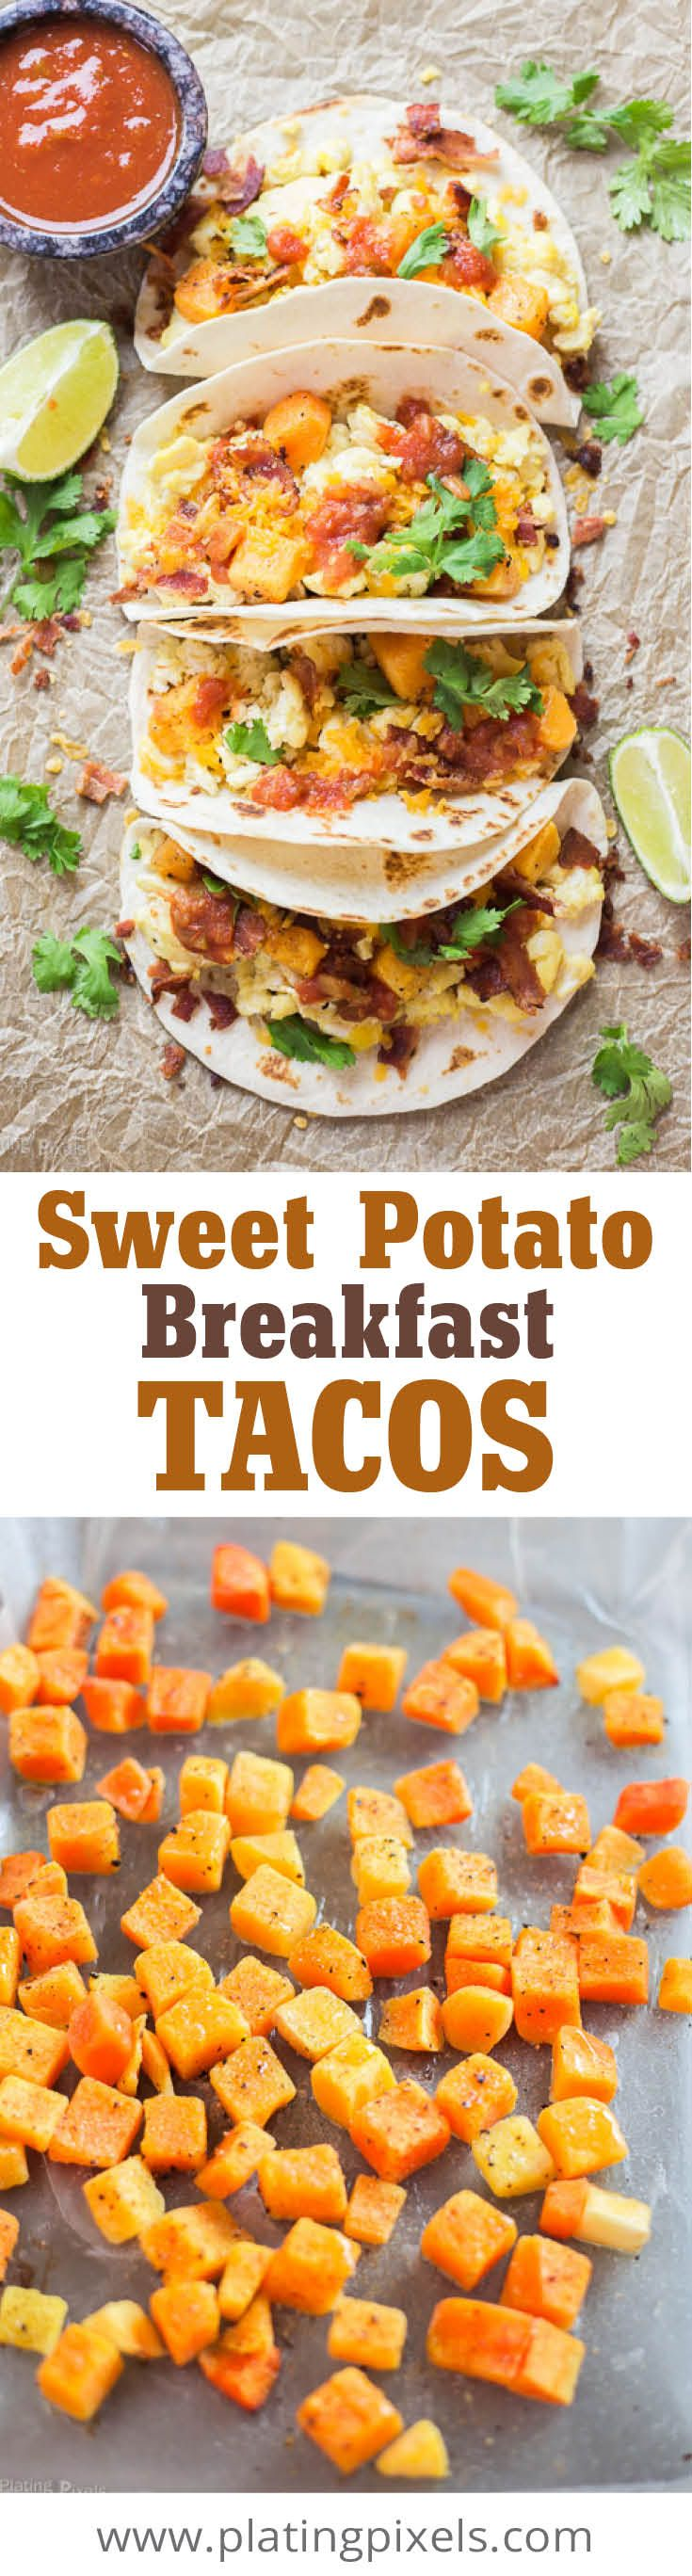 Sweet Potato Breakfast Tacos by Plating Pixels. Fluffy scrambled eggs create a lush bed for crispy bacon pieces, roasted sweet potato cubes, cheese, picante sauce and fresh cilantro in these unique fall-themed breakfast tacos. - www.platingpixels.com